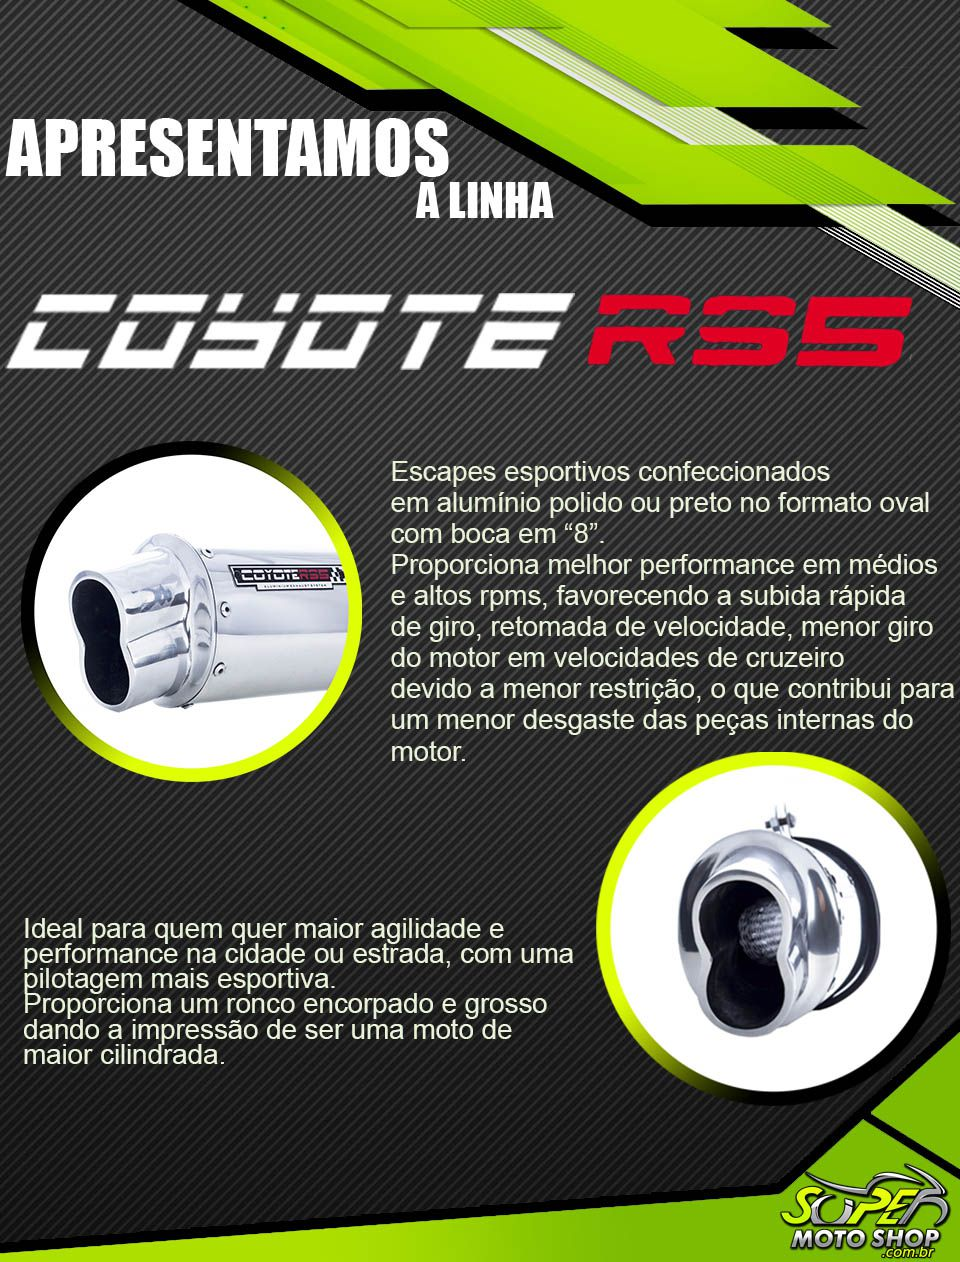 Escape / Ponteira Coyote RS5 Boca 8 Alumínio Oval - CG 125 150 160 / Titan Fan Start - Honda - Dourado